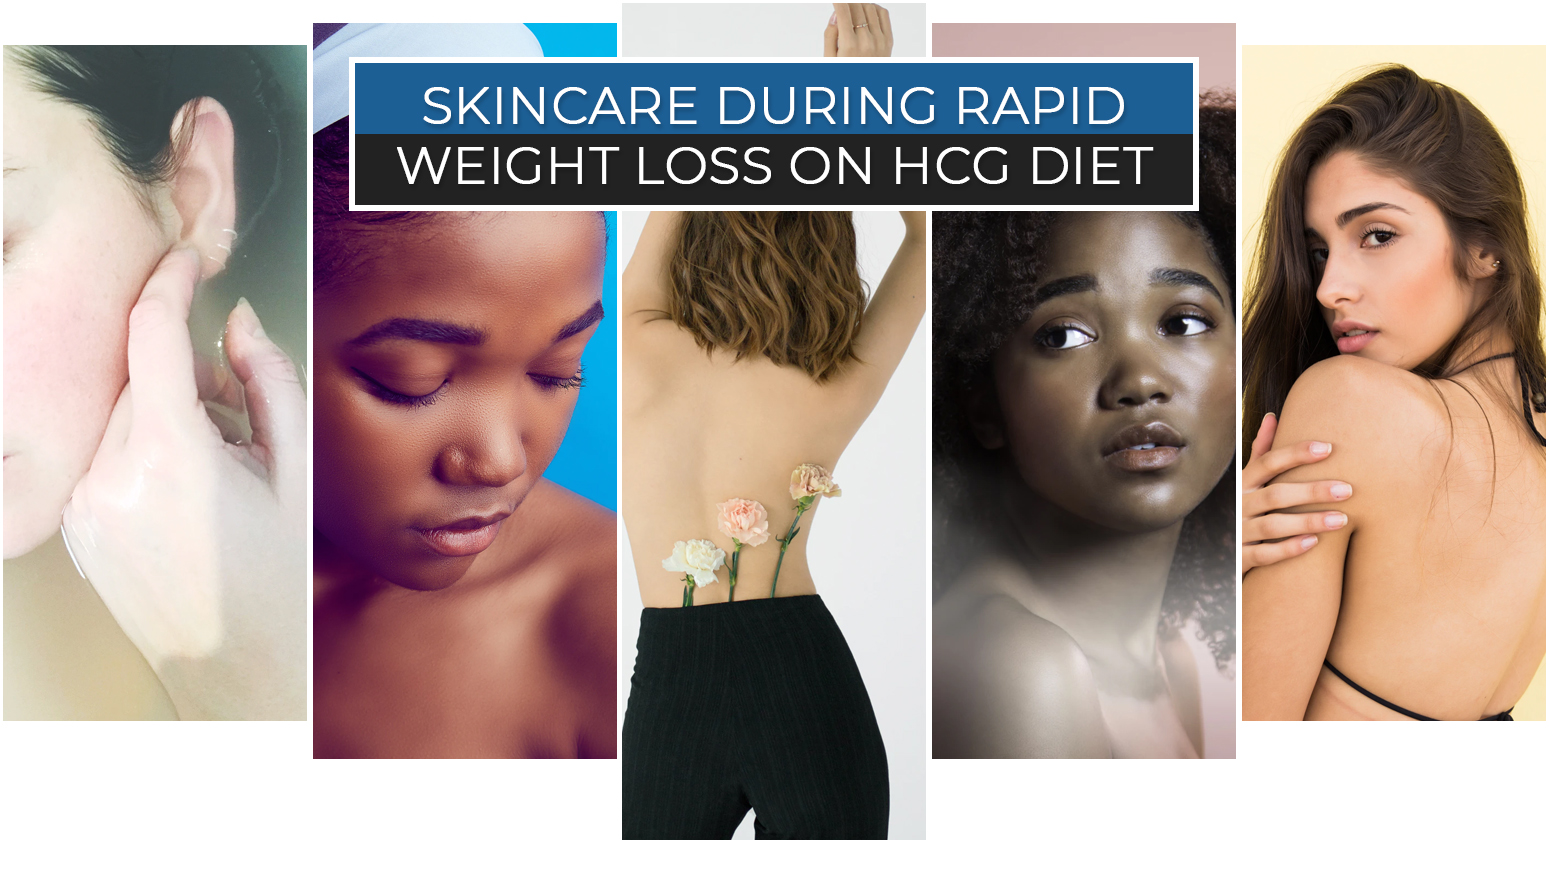 SKINCARE DURING RAPID WEIGHT LOSS ON HCG DIET